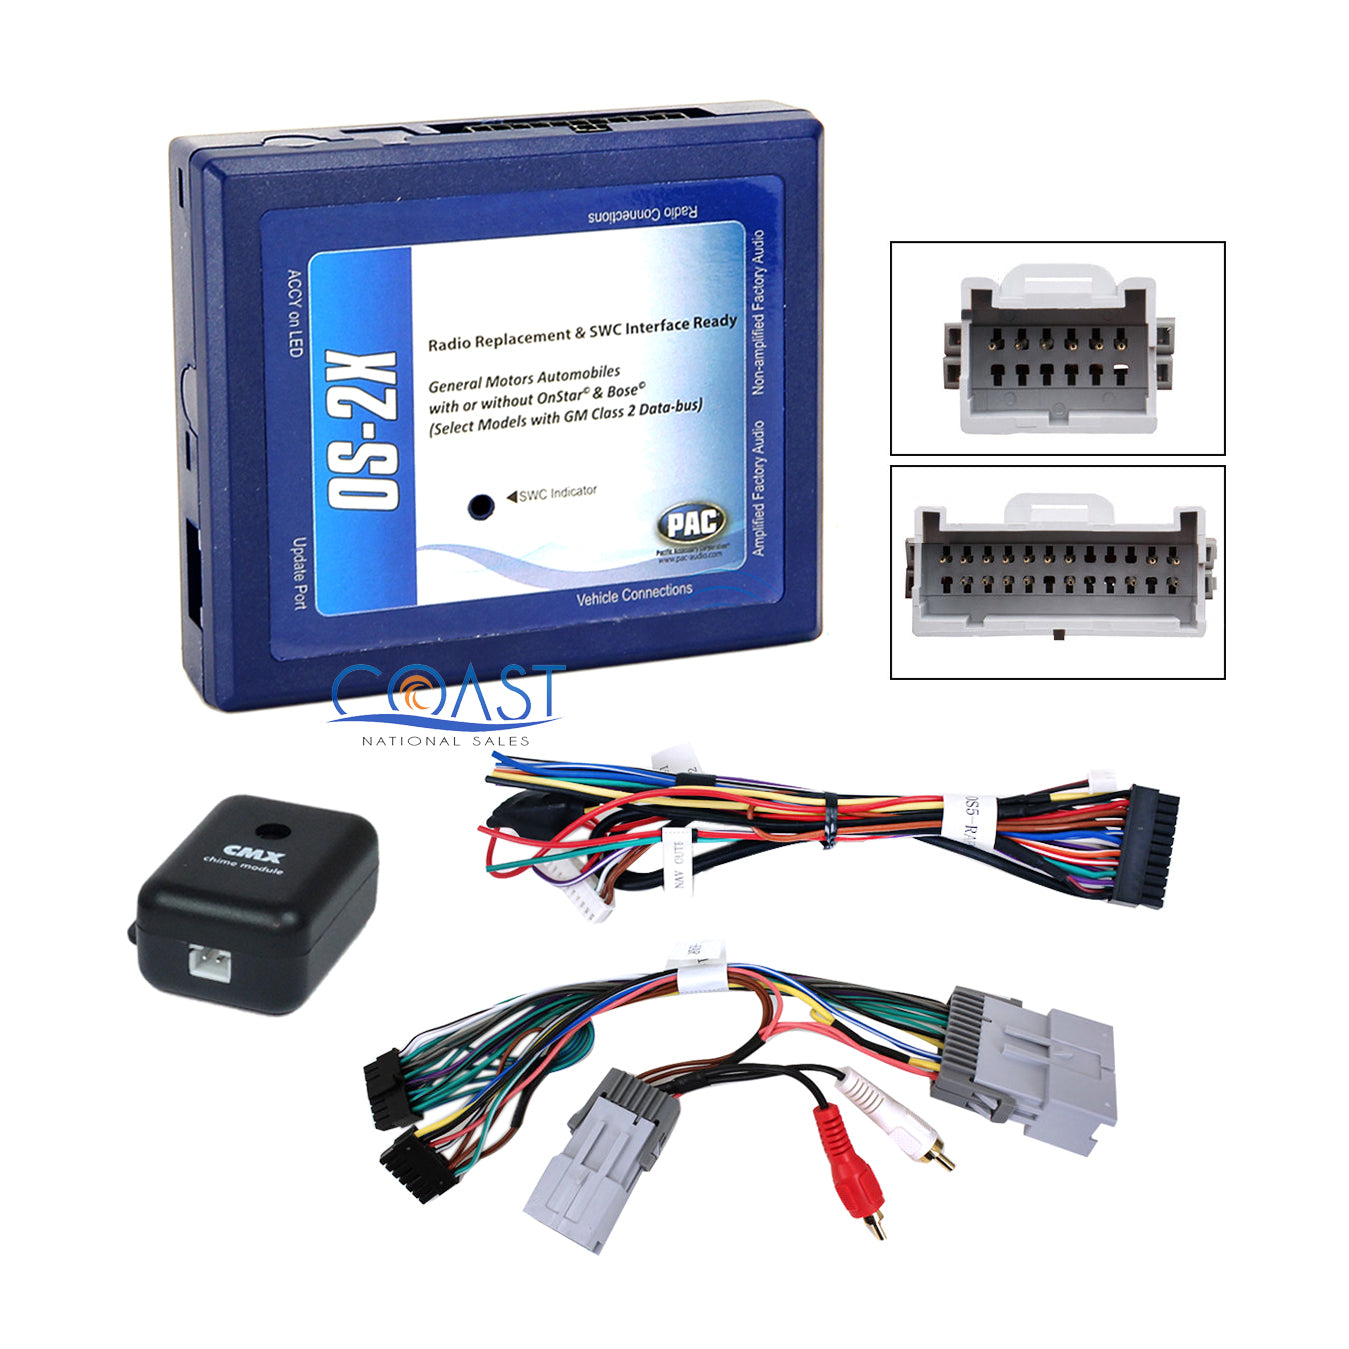 gm radio chime interface wiring diagram car stereo 2 din dash kit onstar interface harness for 2000 up gm  car stereo 2 din dash kit onstar